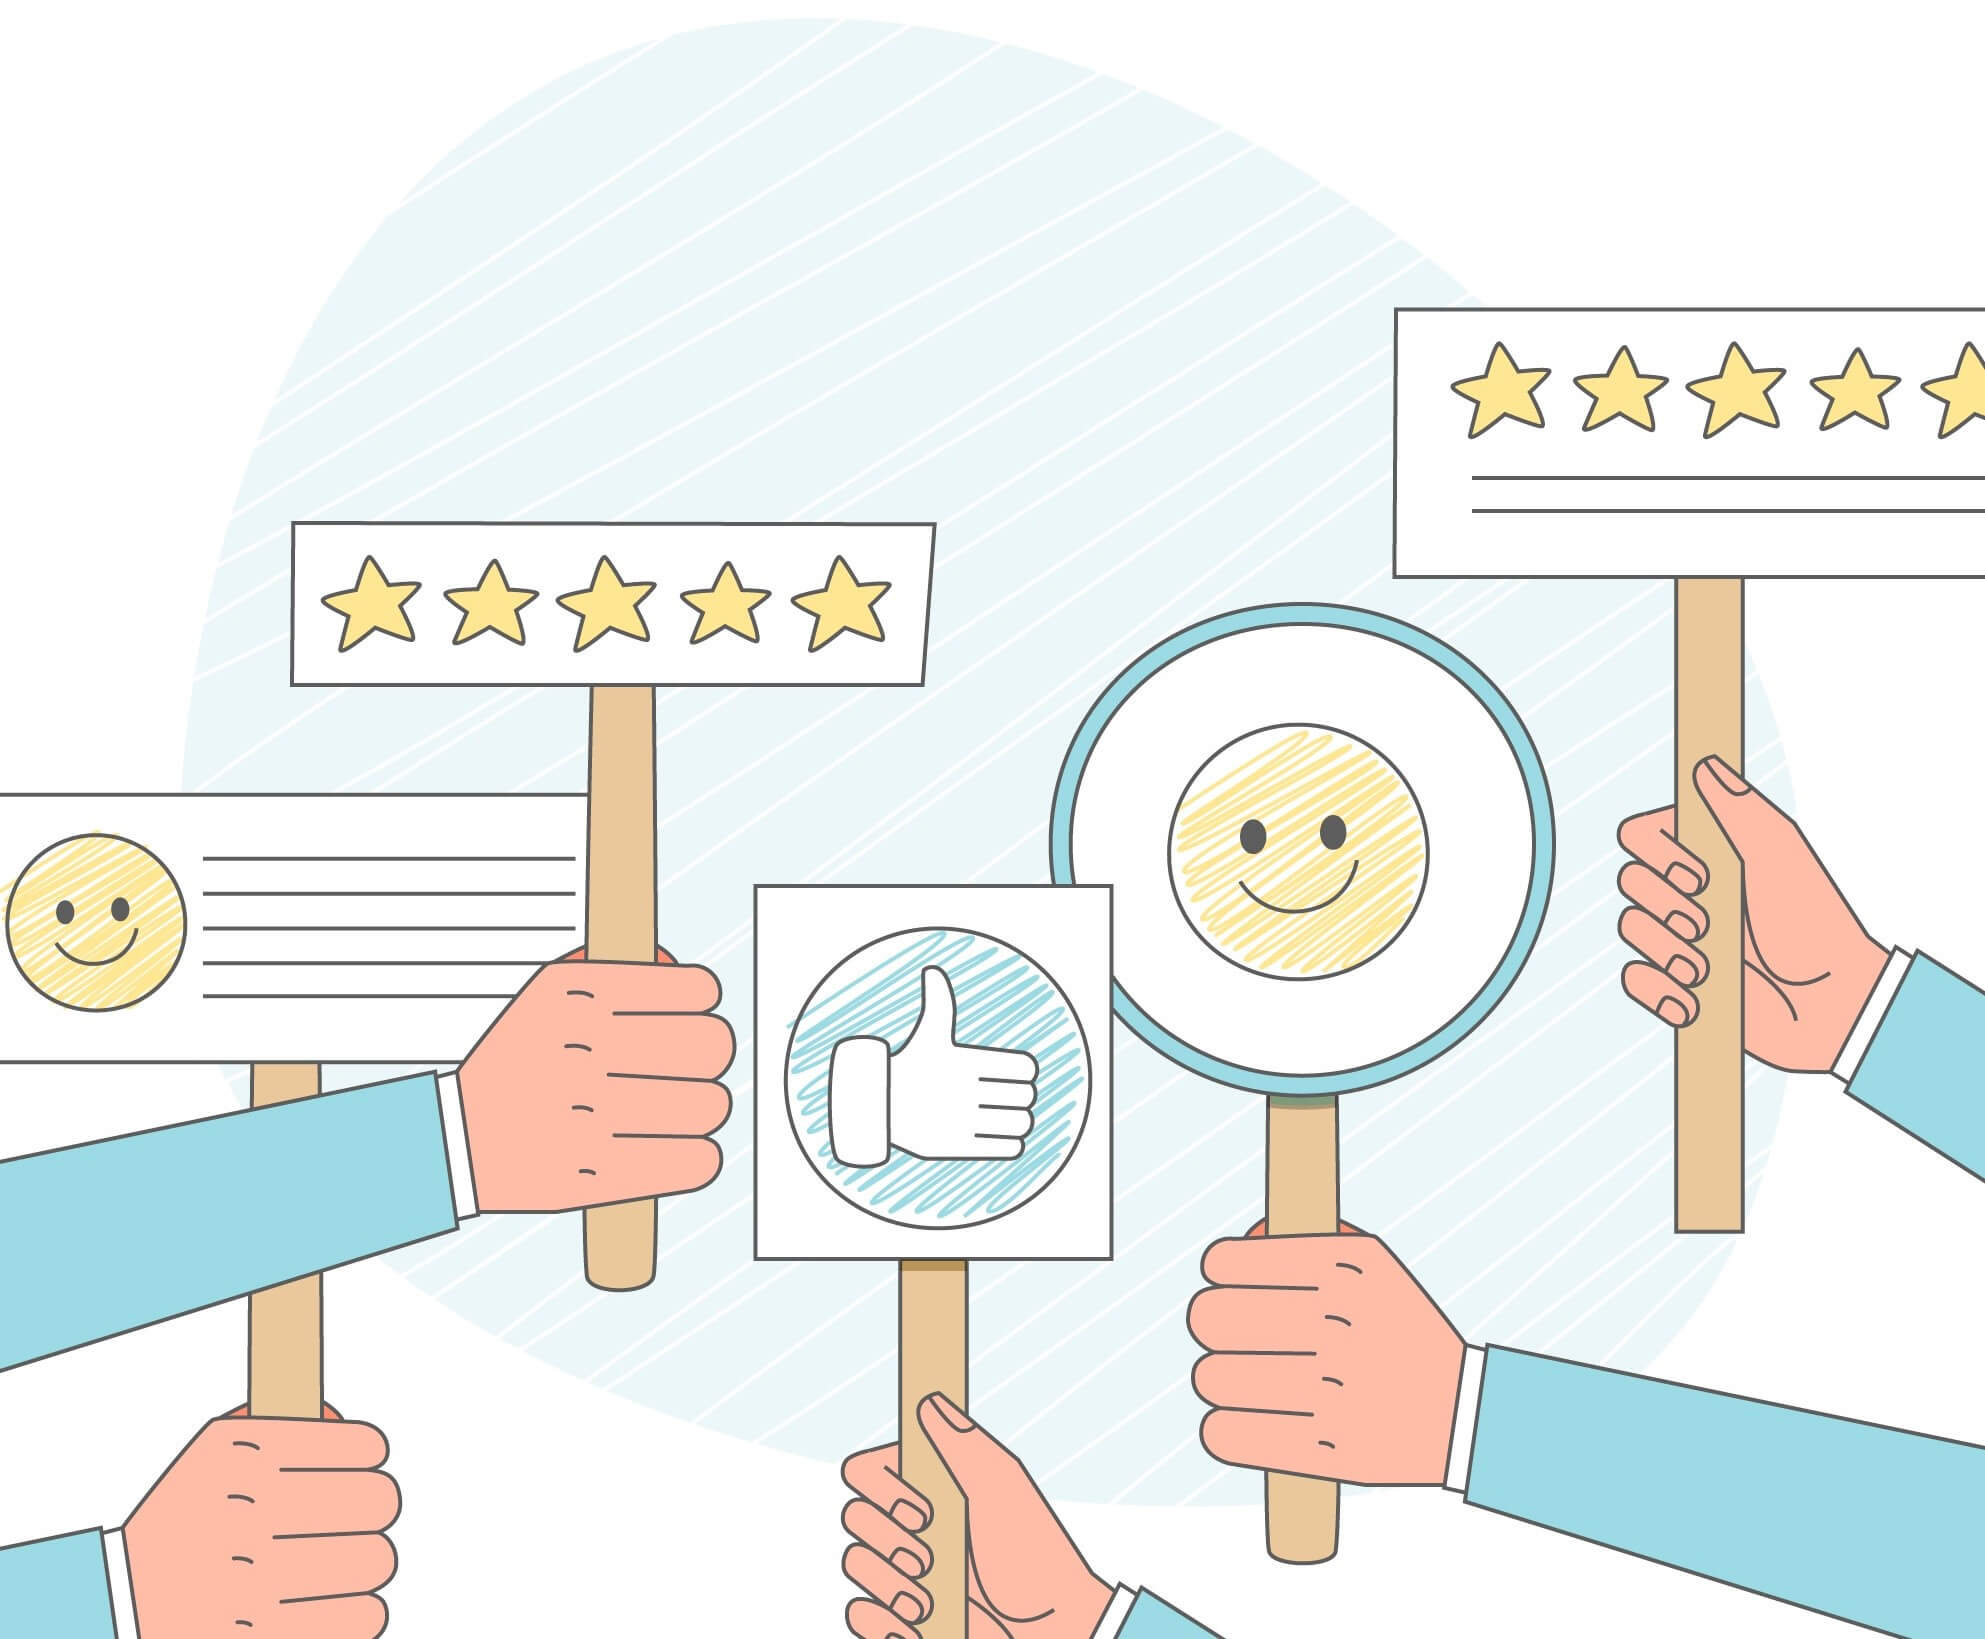 8 Things Most Companies Get Wrong While Capturing Customer Feedback